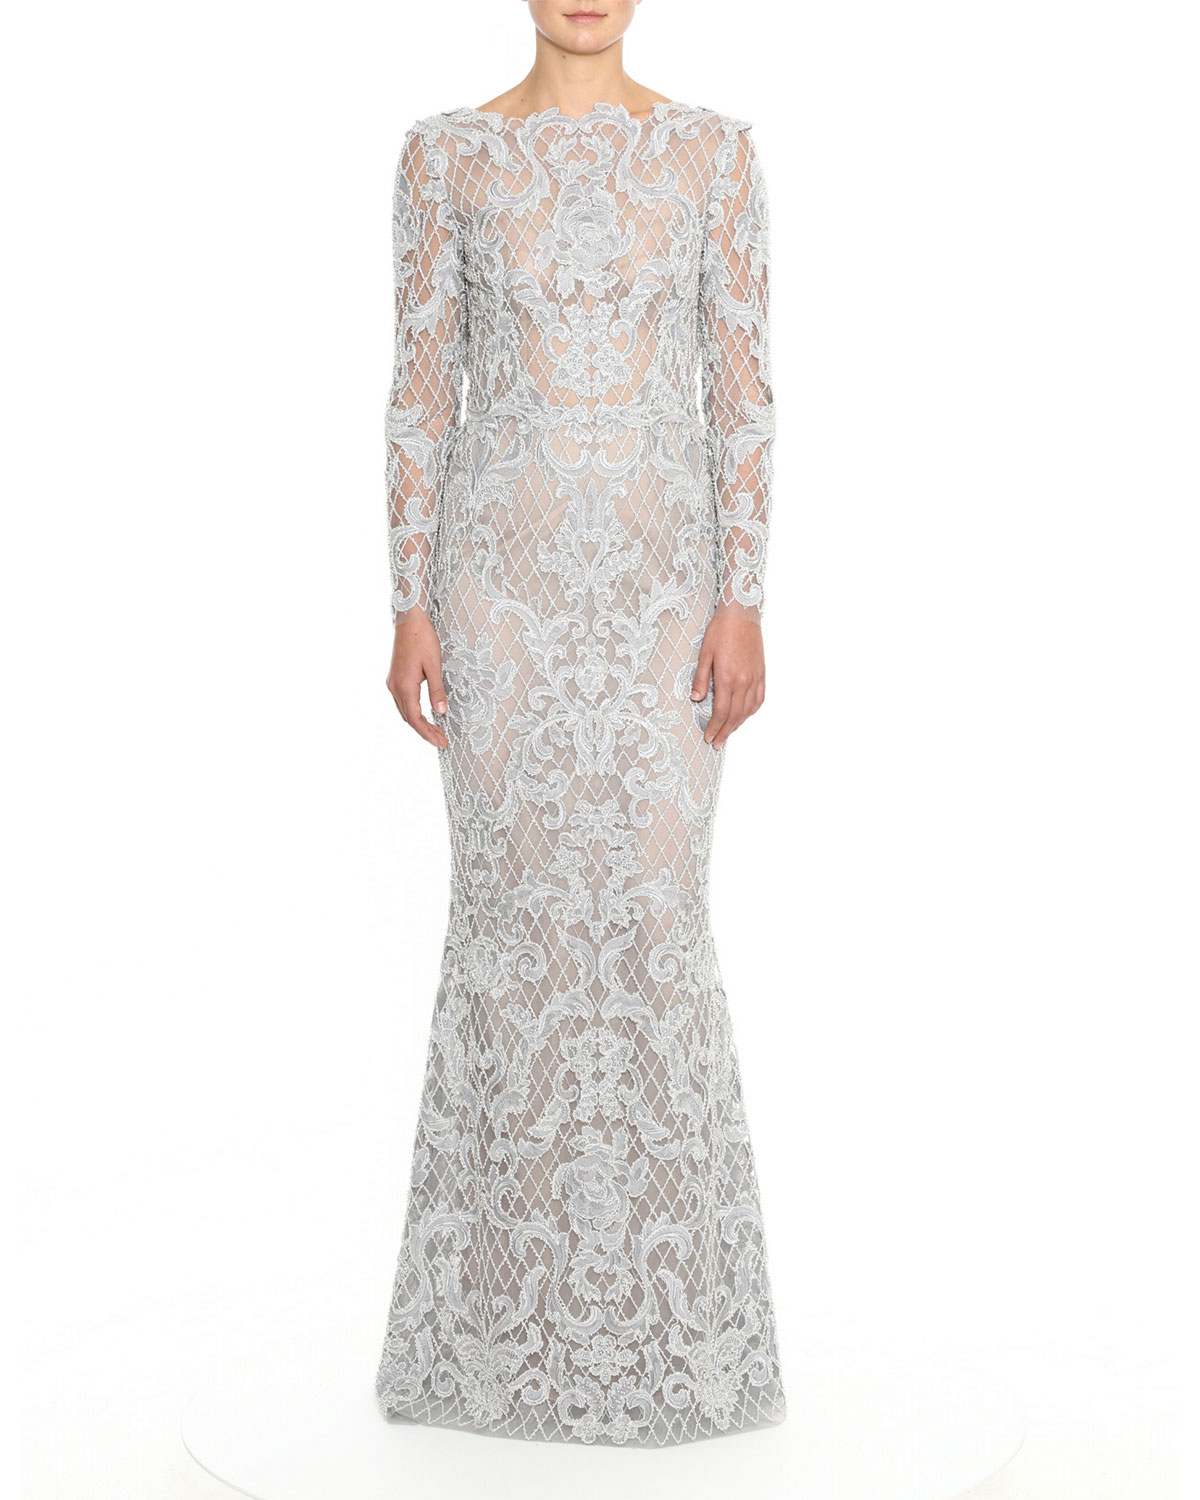 Embroidered Damask Lace Gown